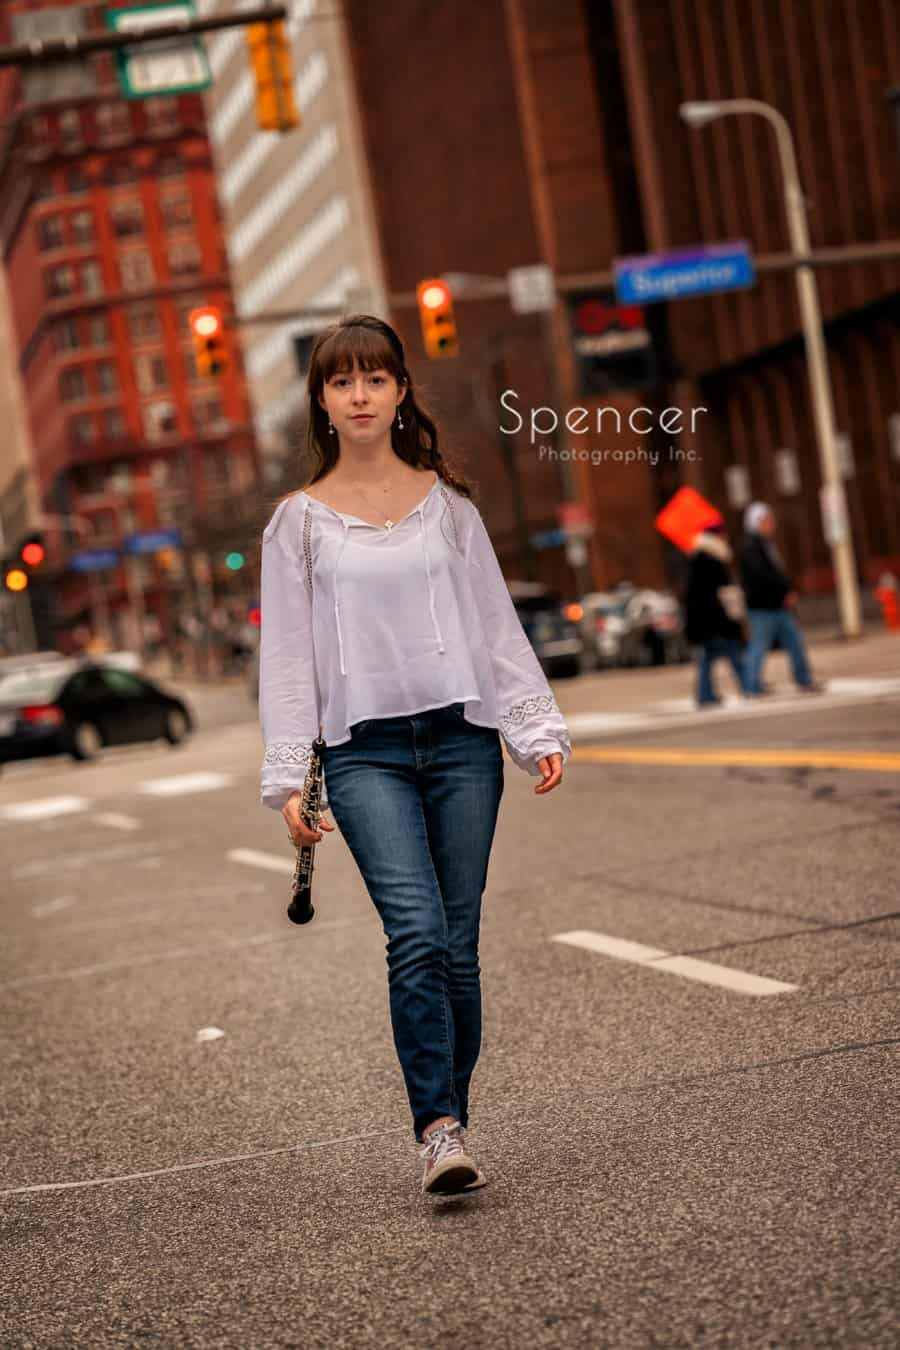 senior portrait of girl with oboe walking down Cleveland street